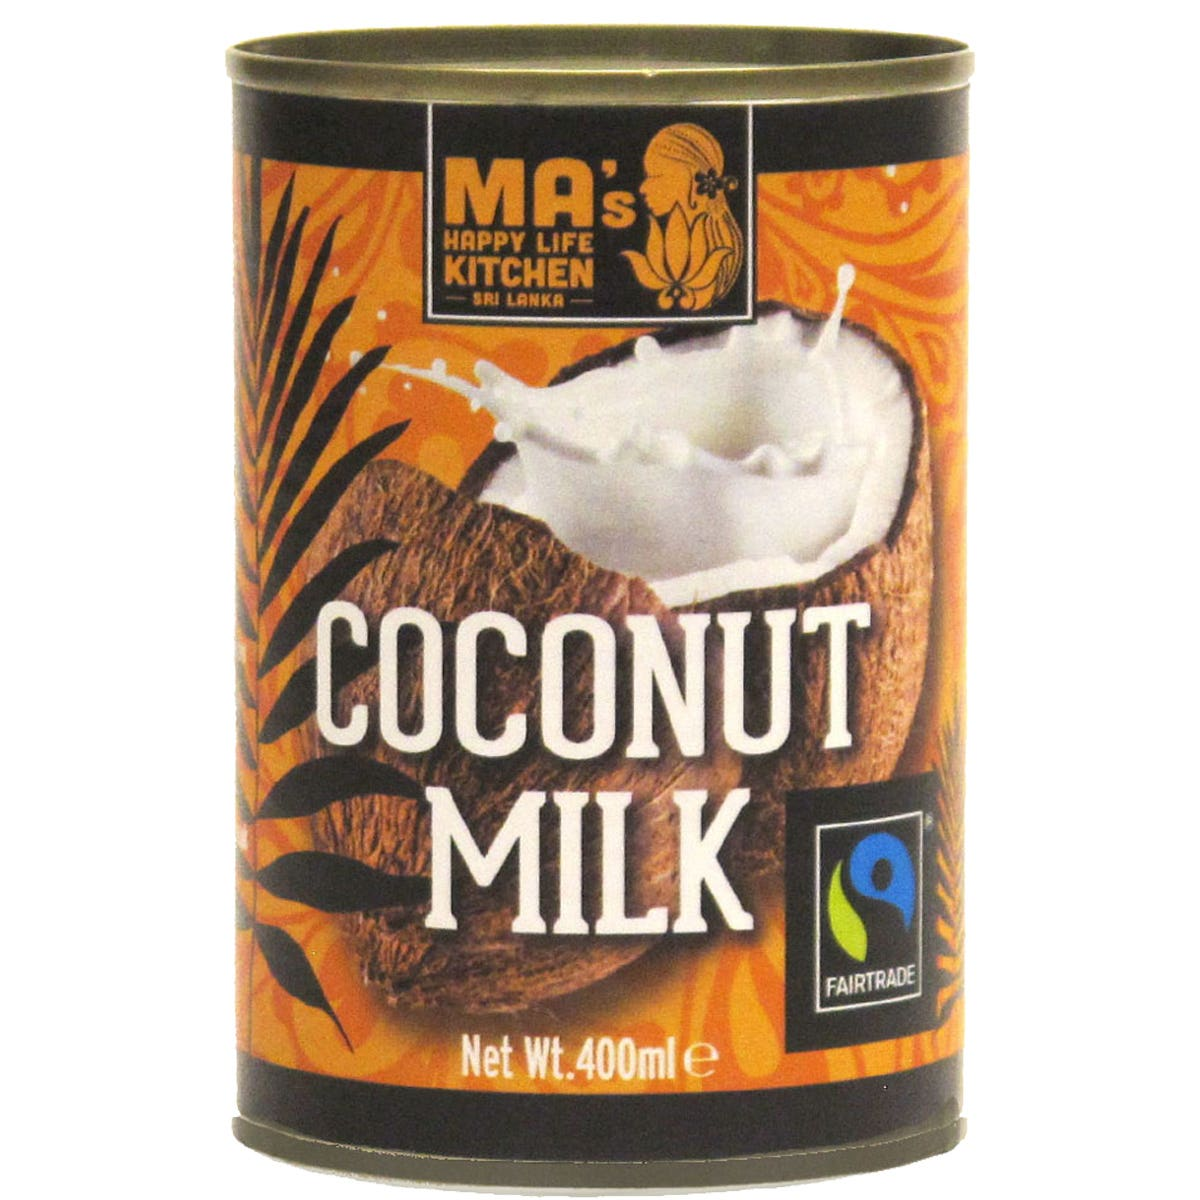 Ma's Happy Life Kitchen Organic Fair Trade Coconut Milk (400ml) SINGLE